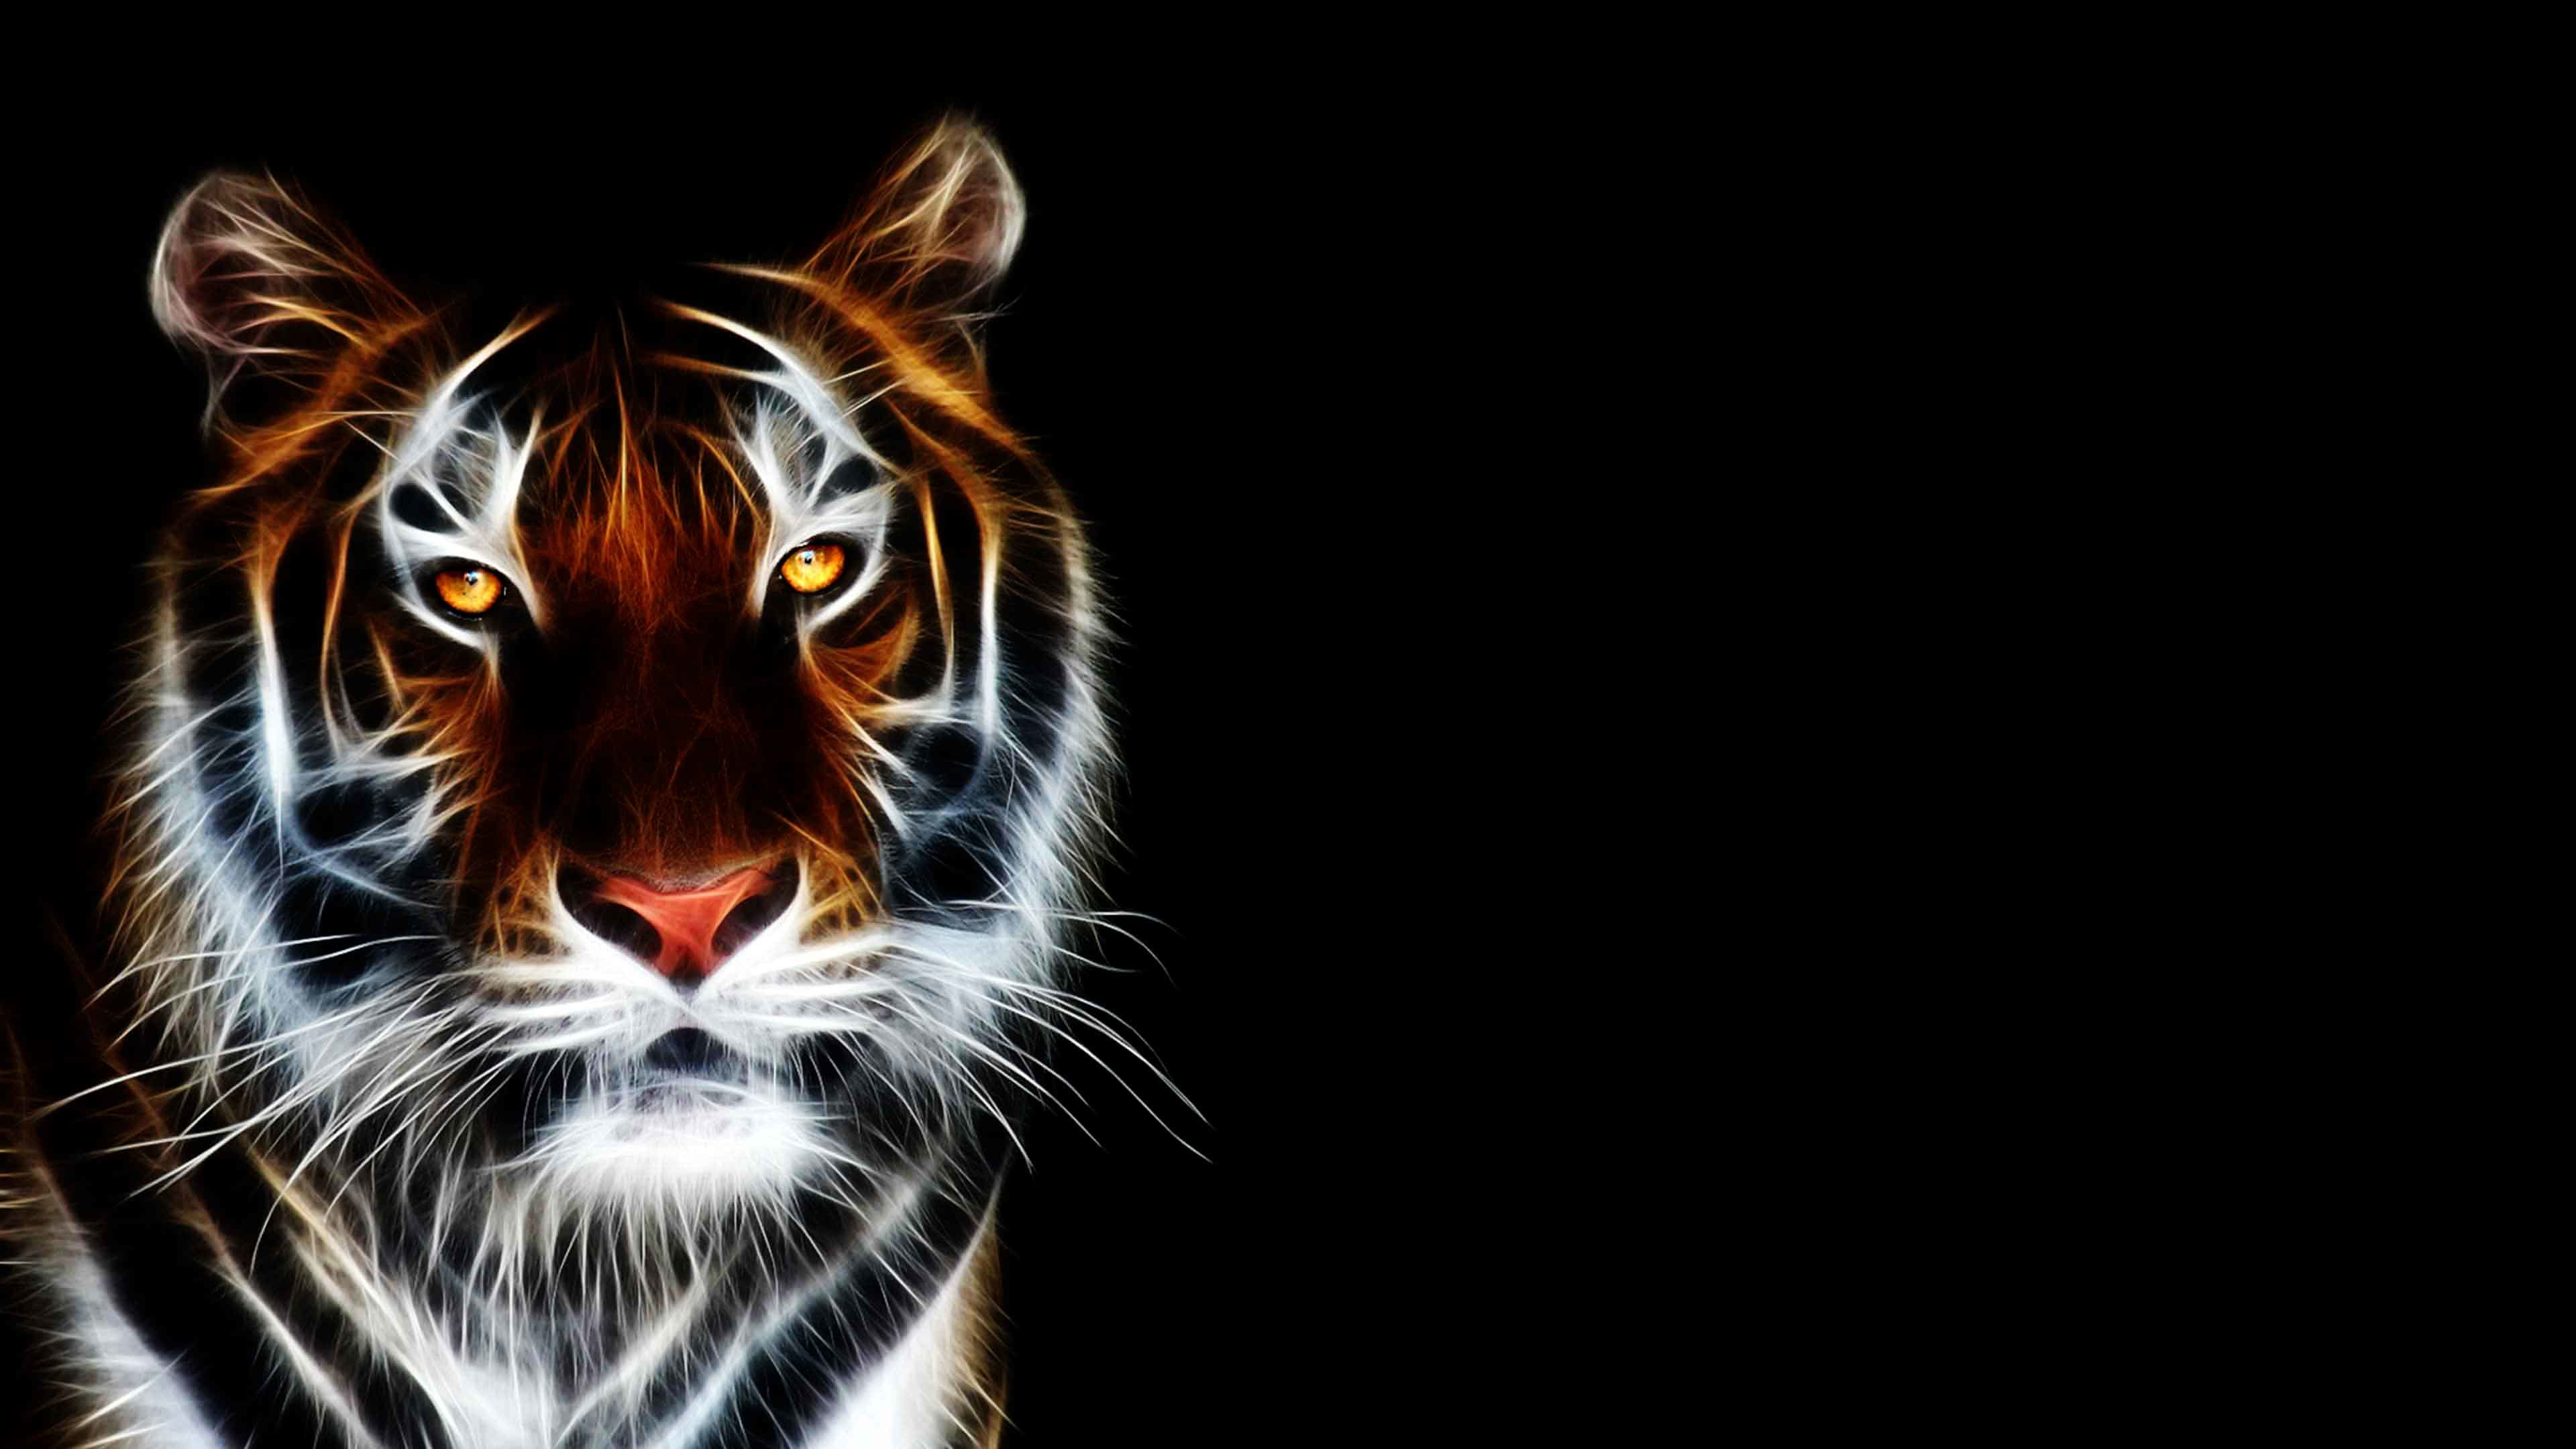 3840x2160 V.29 Tiger Wallpaper - Tiger Images